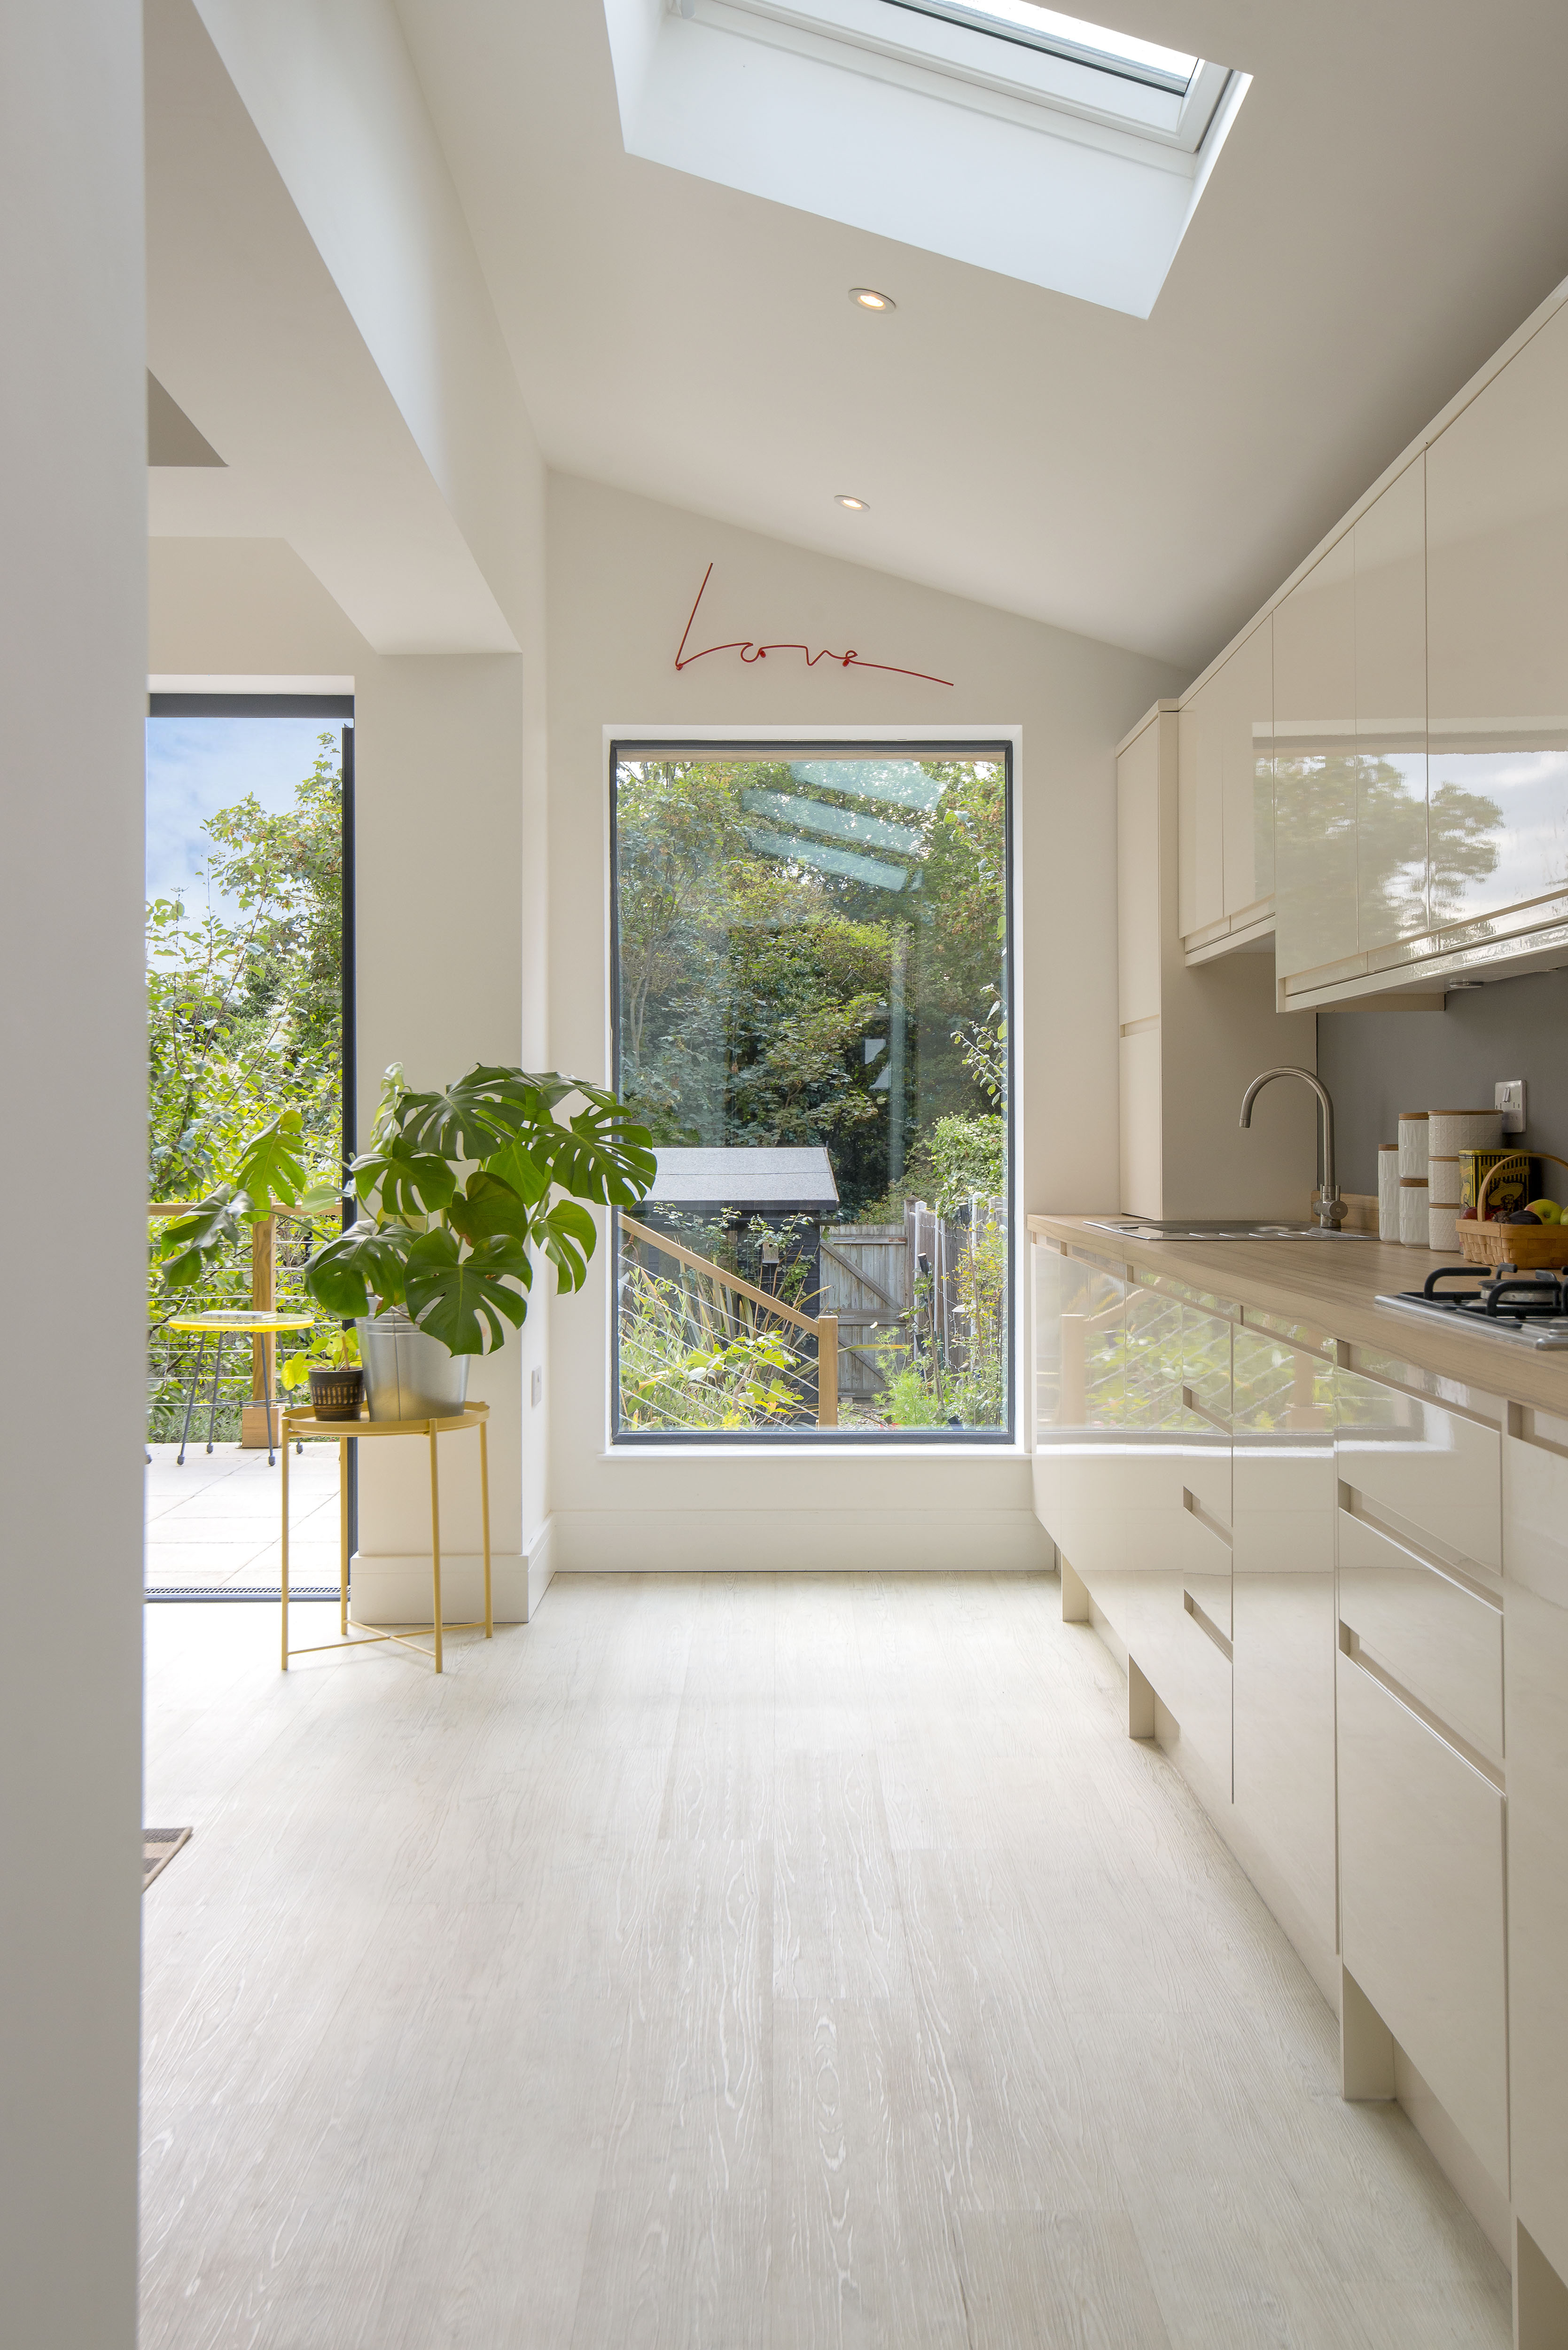 </p> <p>Find your ideal home design pro on designfor-me.com - get matched and see who's interested in your home project. Click image to see more inspiration from our design pros</p> <p>Design by Hugo, architect from Westminster, London</p> <p>#architecture #homedesign #modernhomes #homeinspiration #extensions #extensiondesign #extensioninspiration #extensionideas #houseextension #sideextensions #sidereturn #sideextensionideas </p> <p>